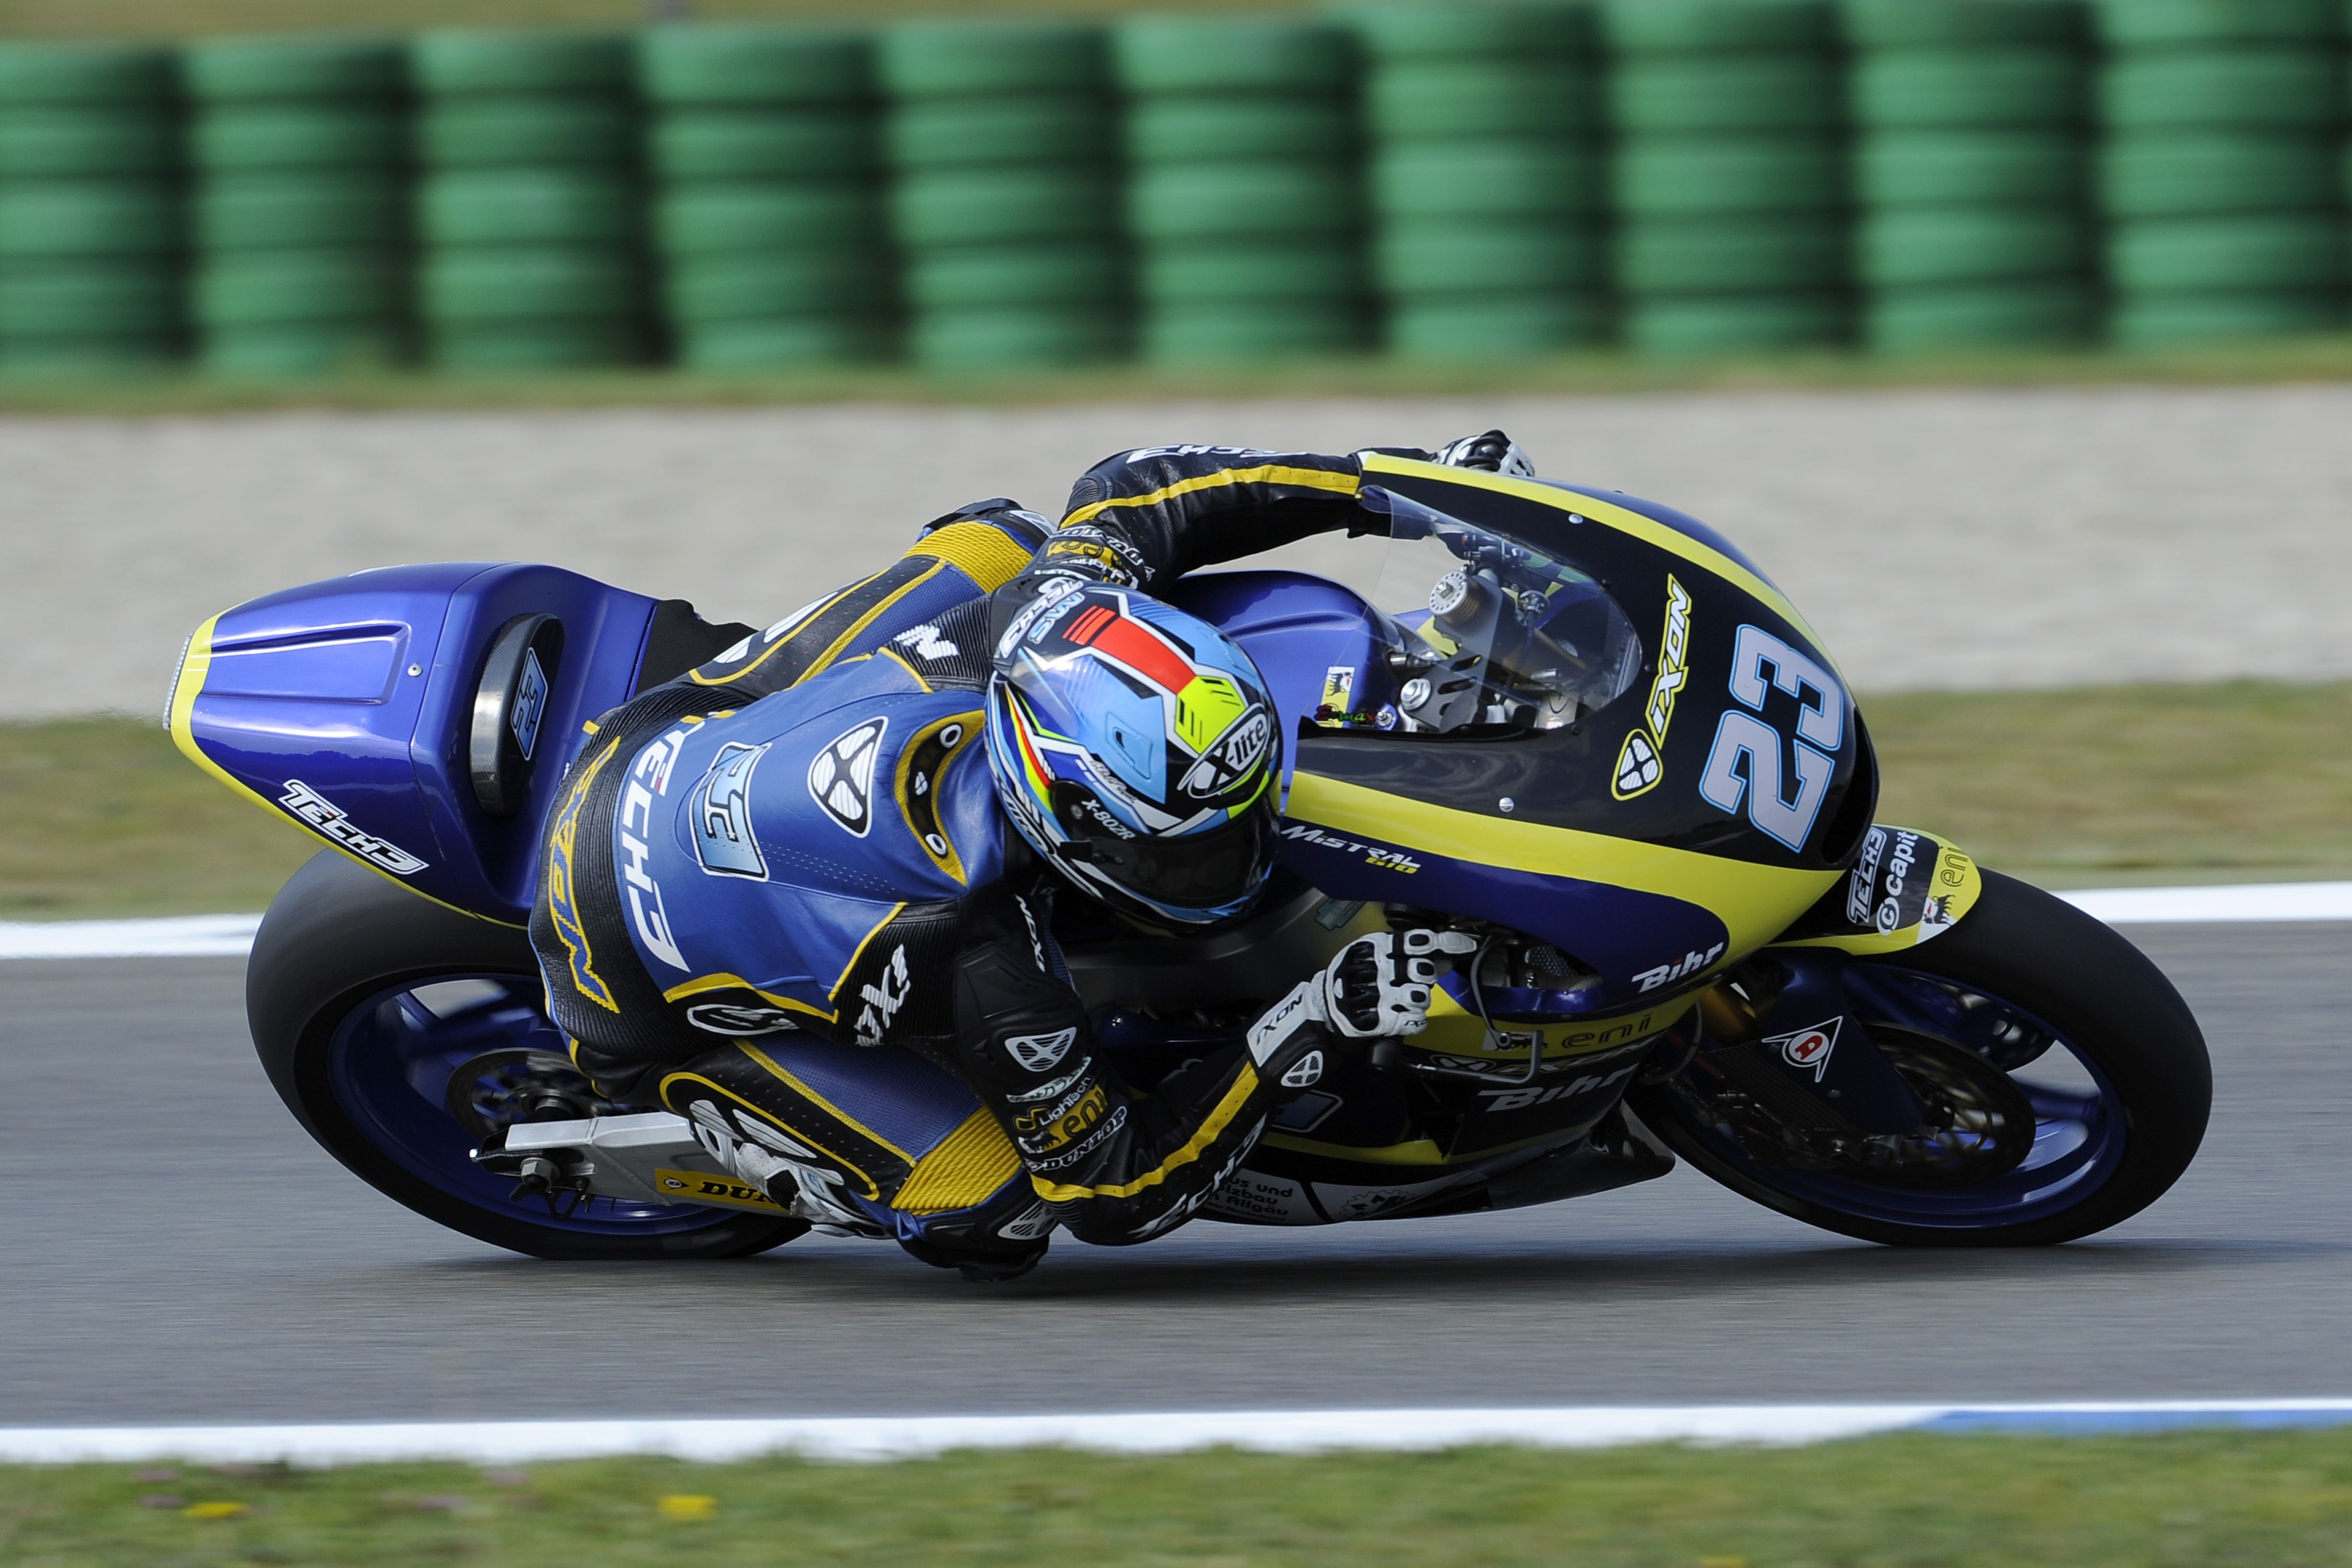 Bright Start On Opening Day At Wet Misano For Cardus And